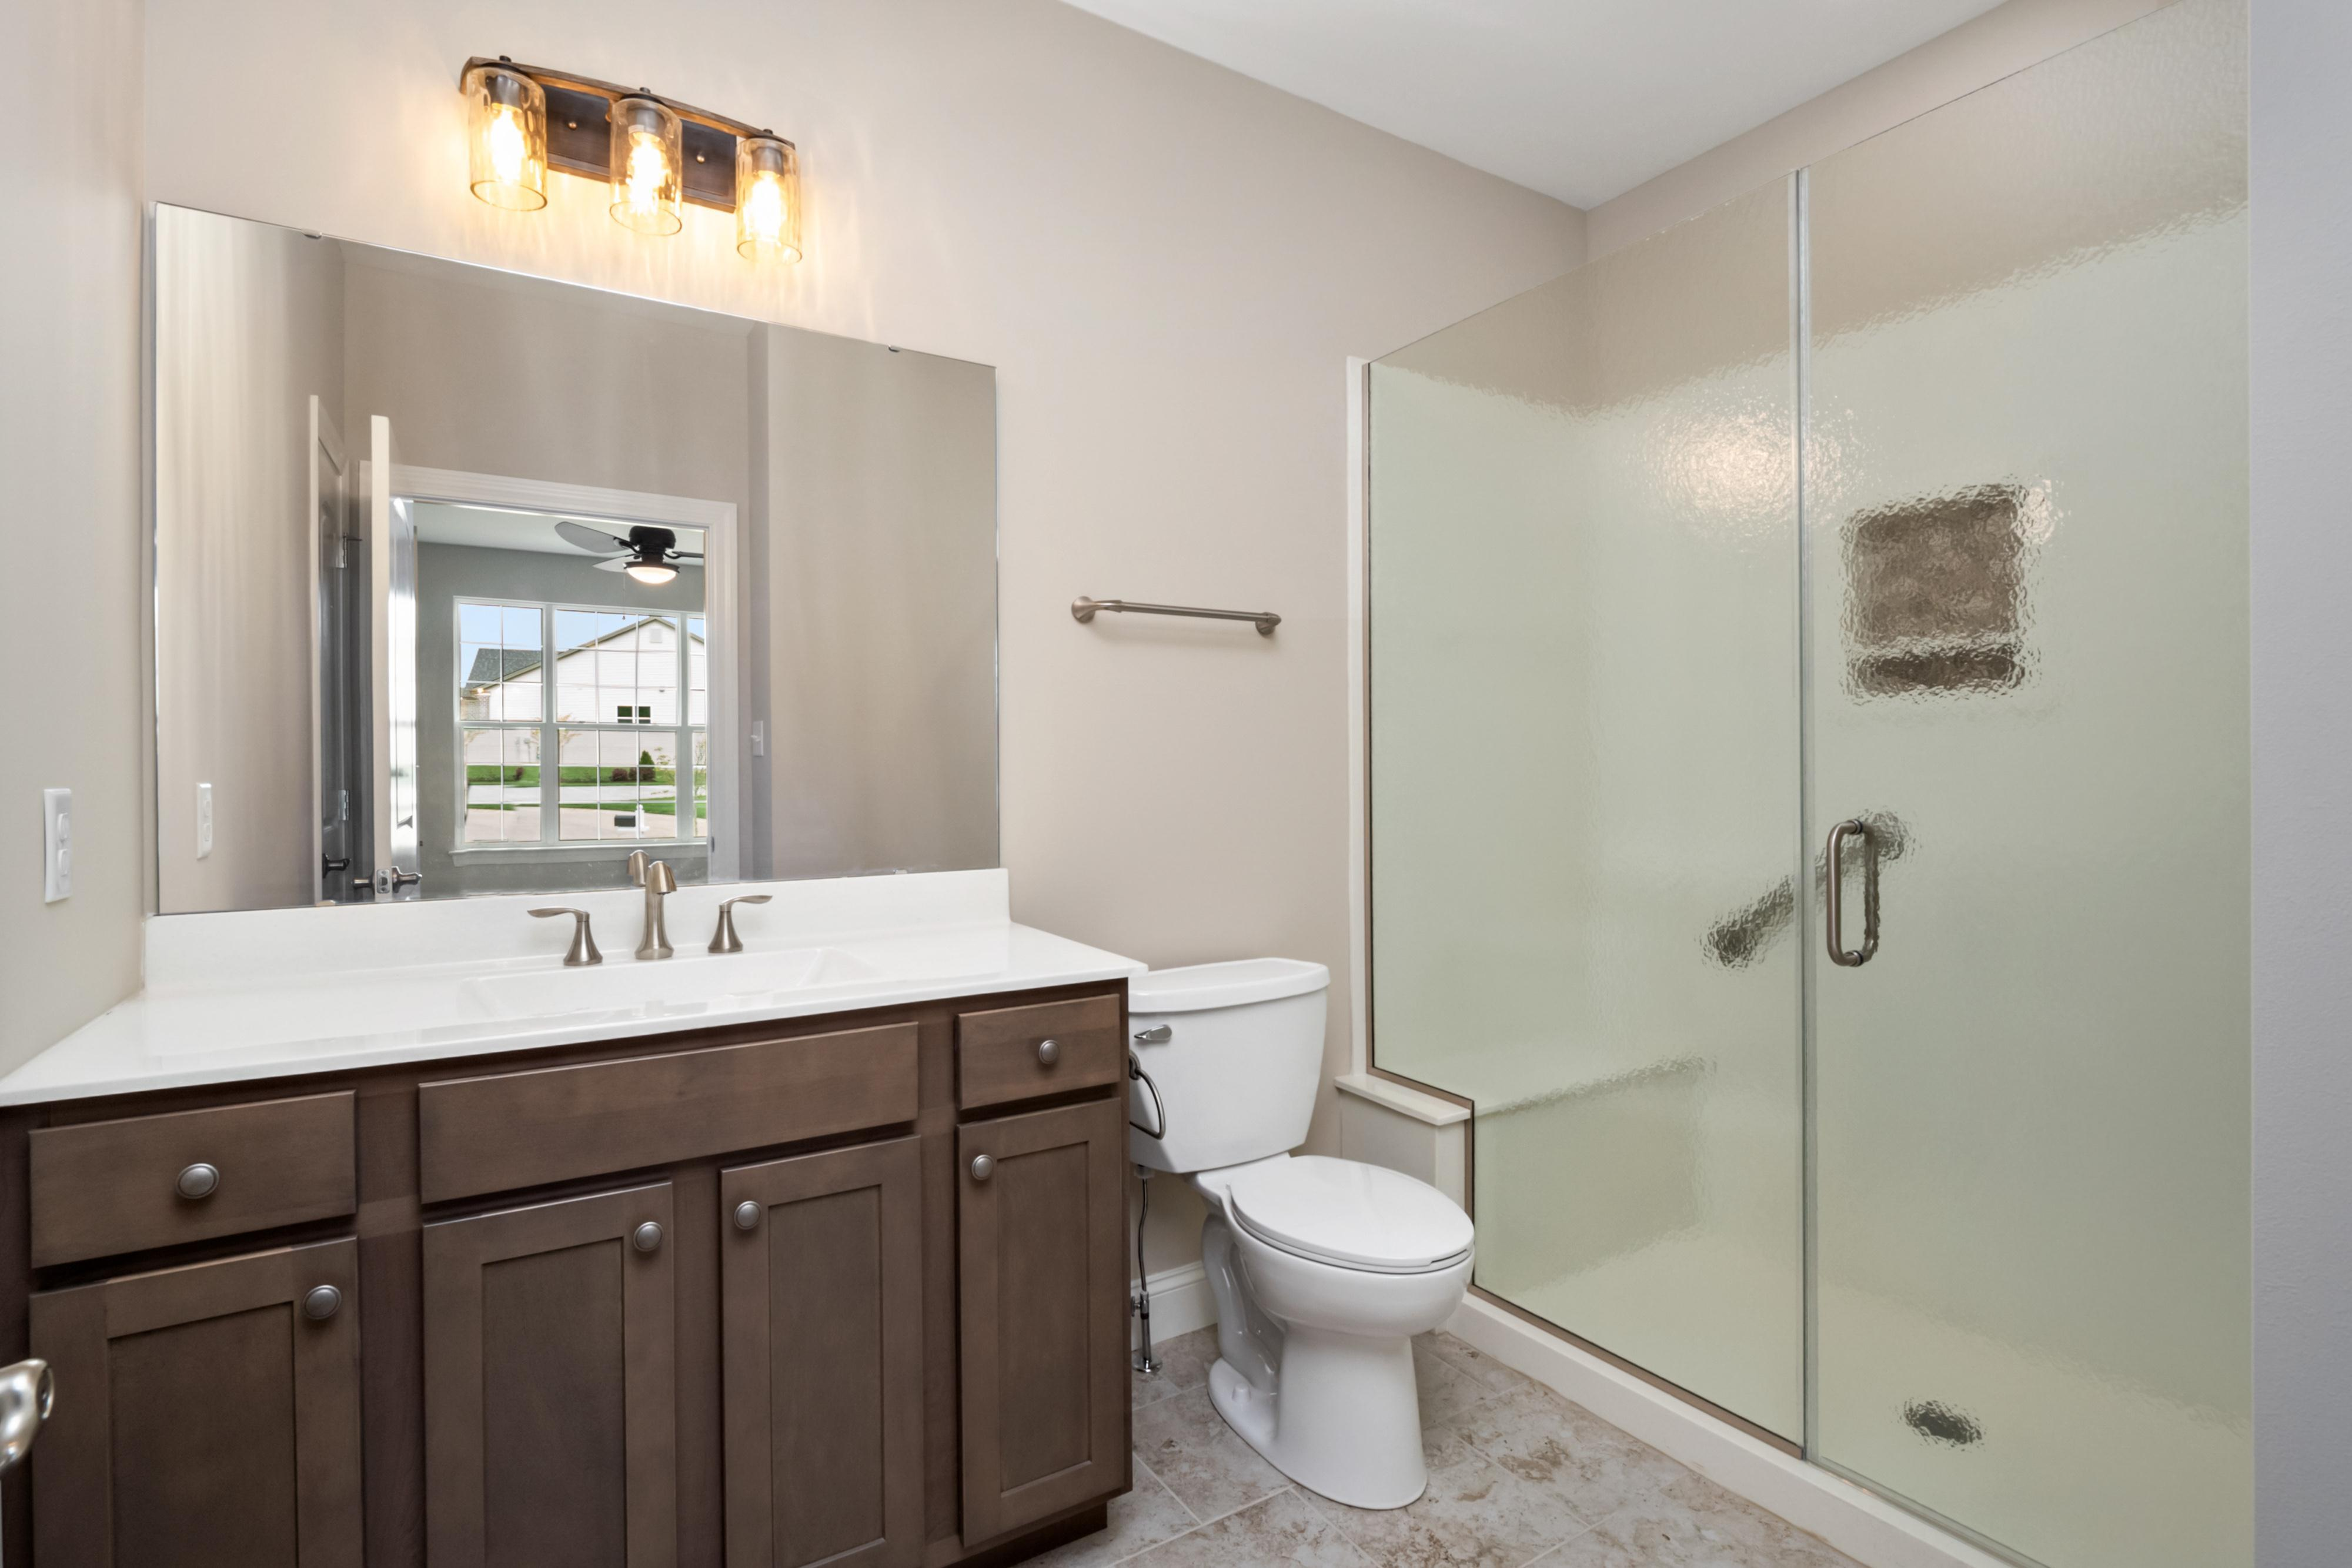 Bathroom featured in The Grand Columbia By The Kemp Homes Company  in St. Louis, MO